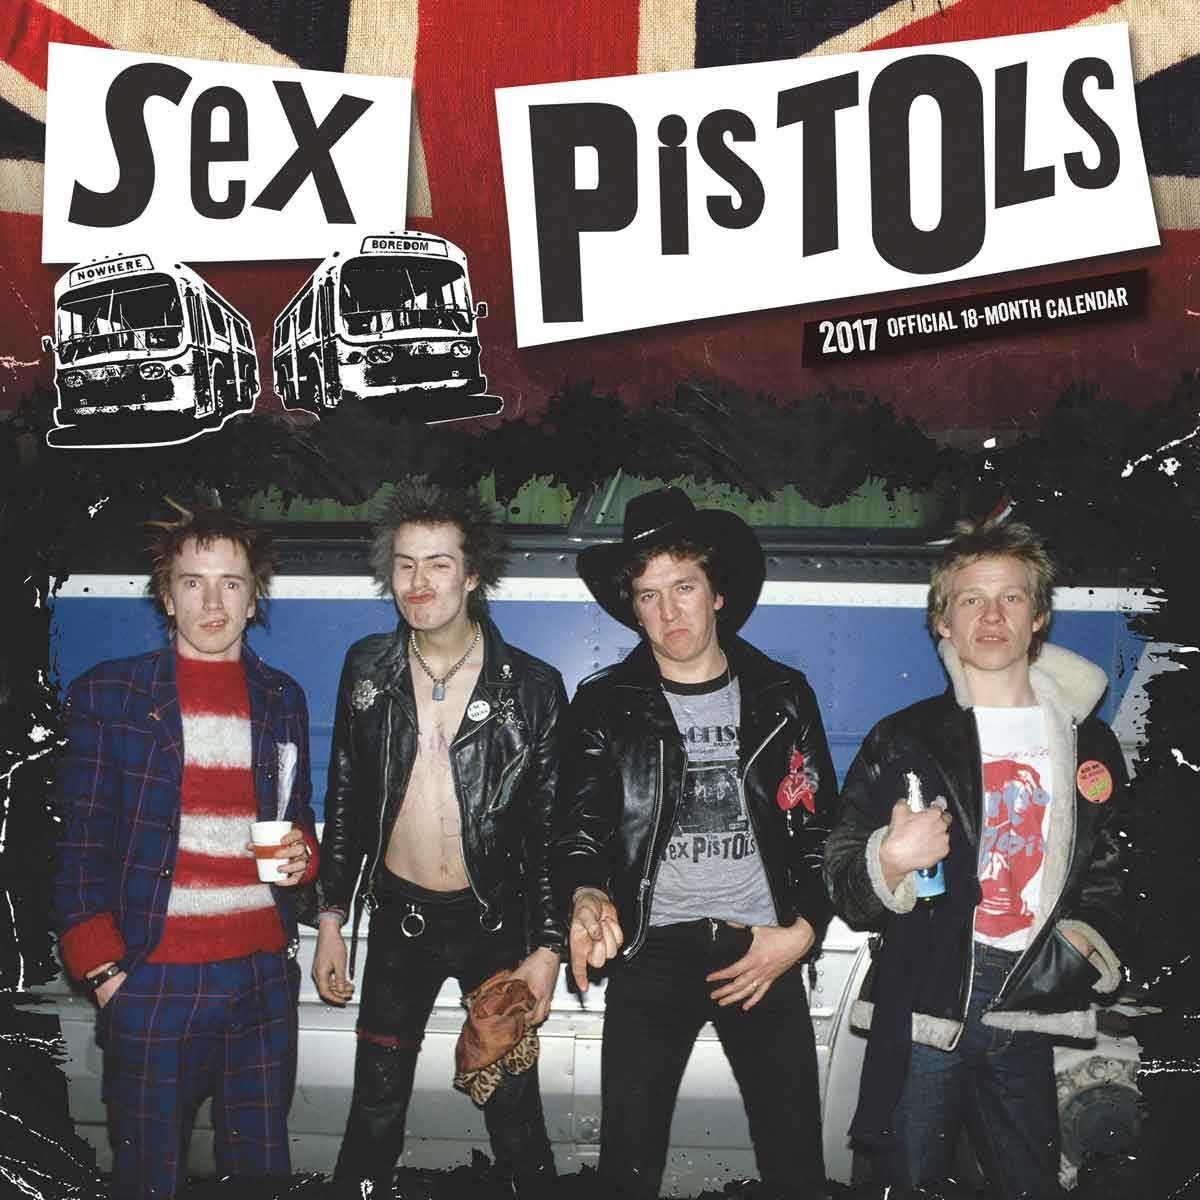 sex pistols Sex pistols biography, news, photos, videos, press releases, festival appearances, quotes | the sex pistols (formed 1975) the sex pistols are an english punk band, formed in london the band originally consisted of johnny rotten on vocals (b john lydon), steve jones on guitar, paul cook on drums and glen matlock on | contactmusiccom.